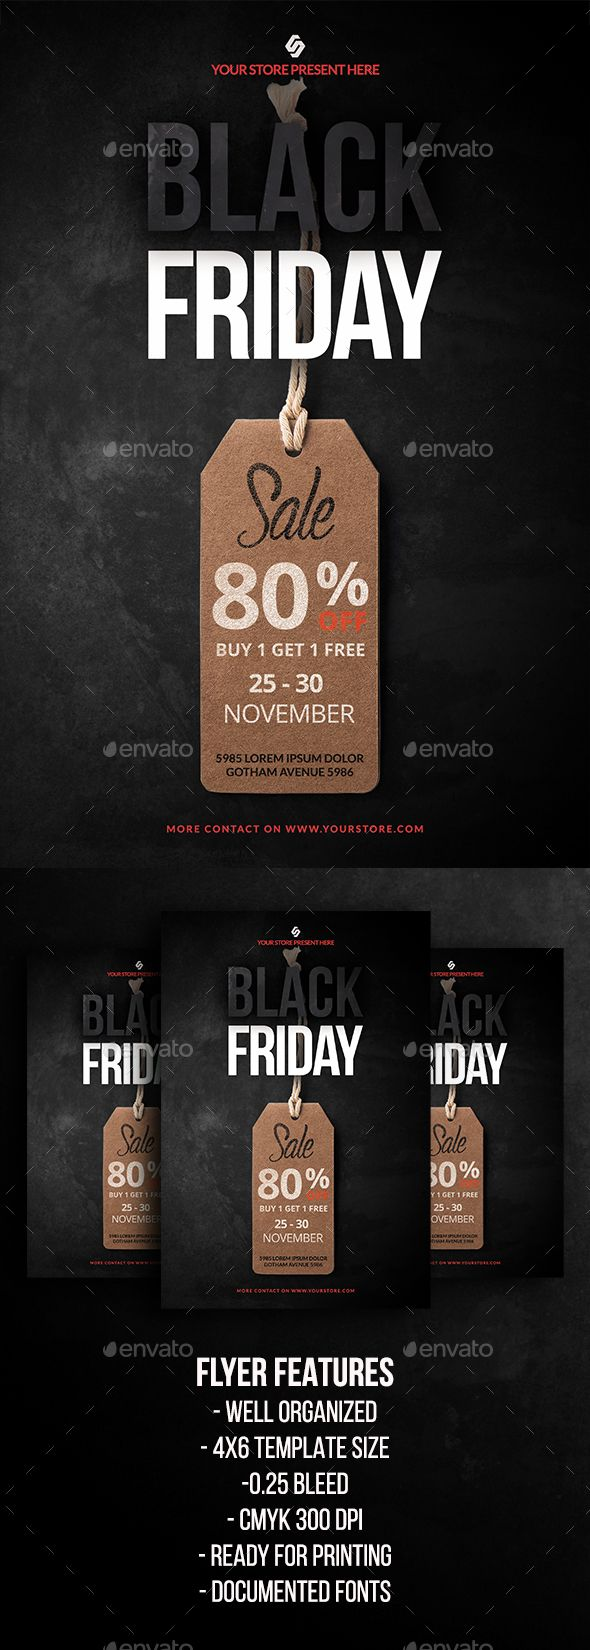 Black Friday Sale Flyer Template  — PSD Template #christmas sale #4x6 • Download ➝ https://graphicriver.net/item/black-friday-sale-flyer-template/18421897?ref=pxcr